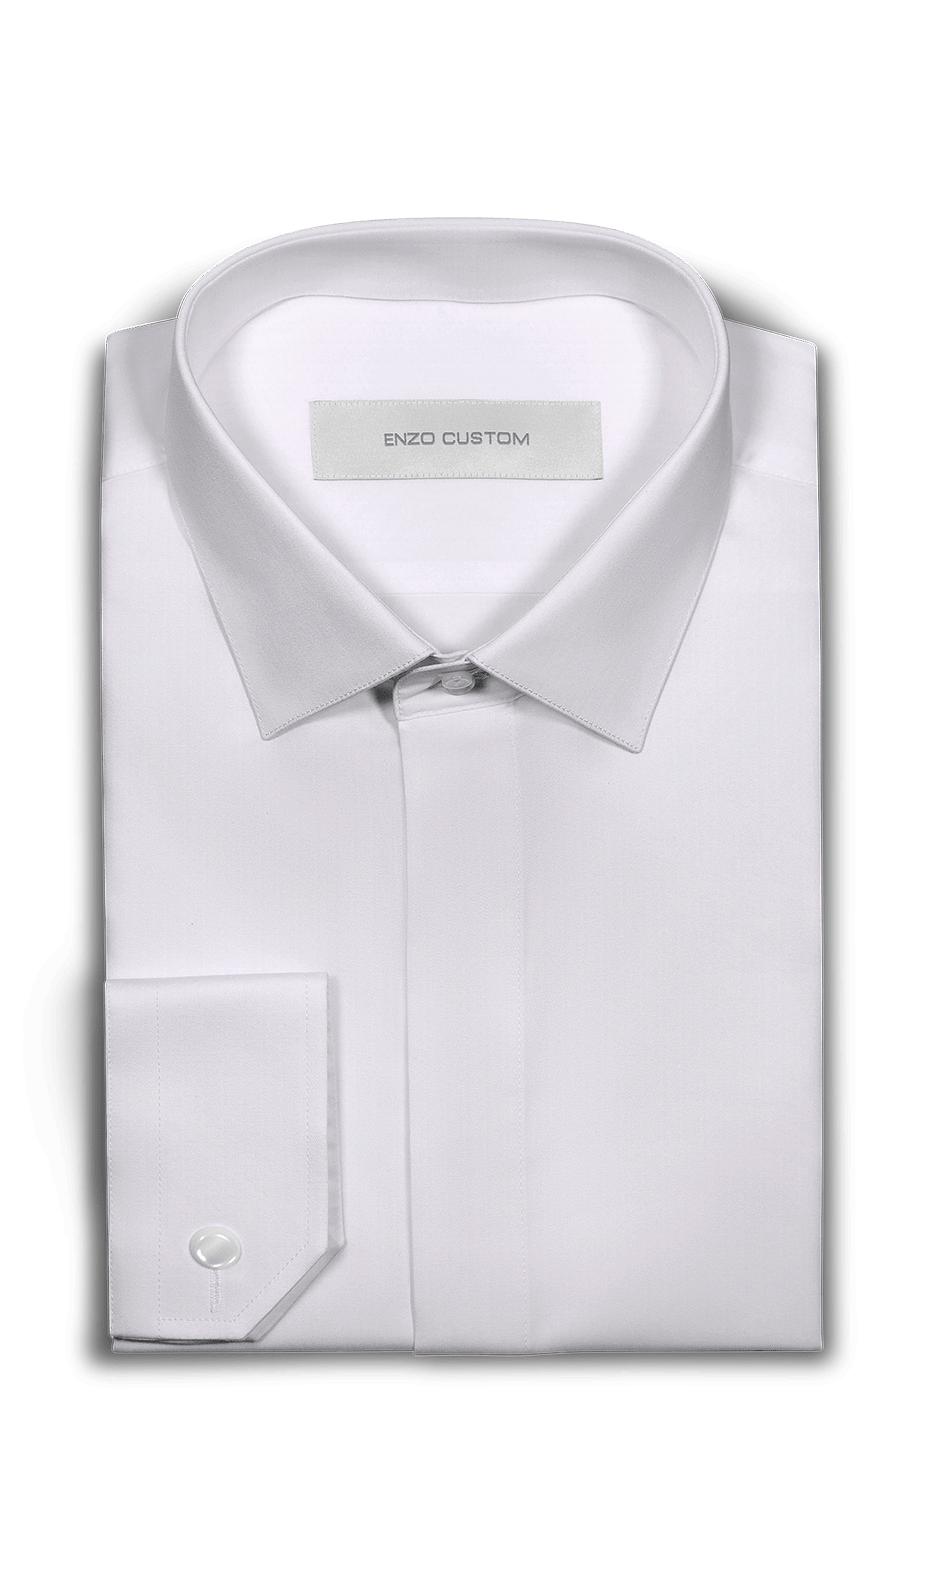 White Bamboo Blend Dress Shirt - Enzo Custom